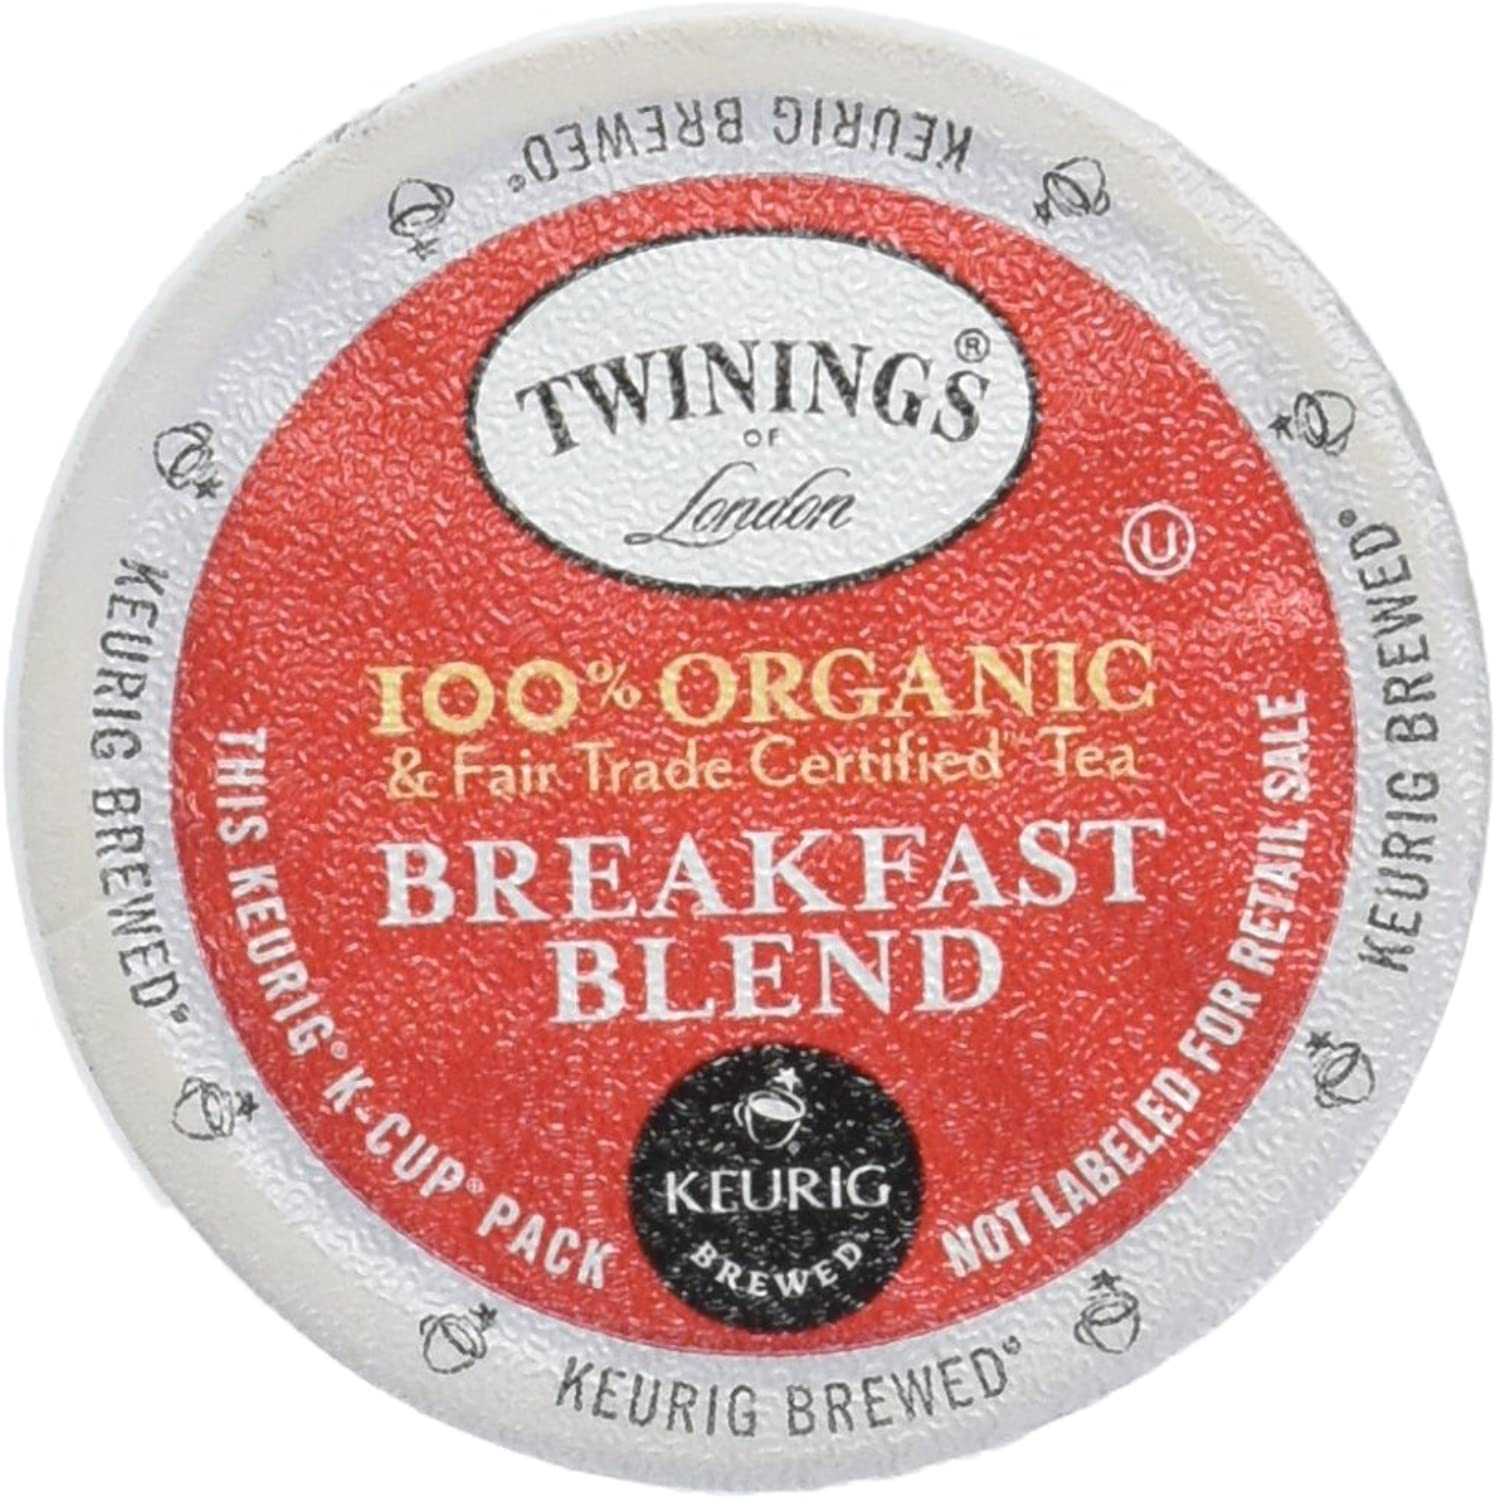 Twinings of London Organic and Fair Trade Certified Breakfast Blend Tea K-Cups for Keurig, 72 Count